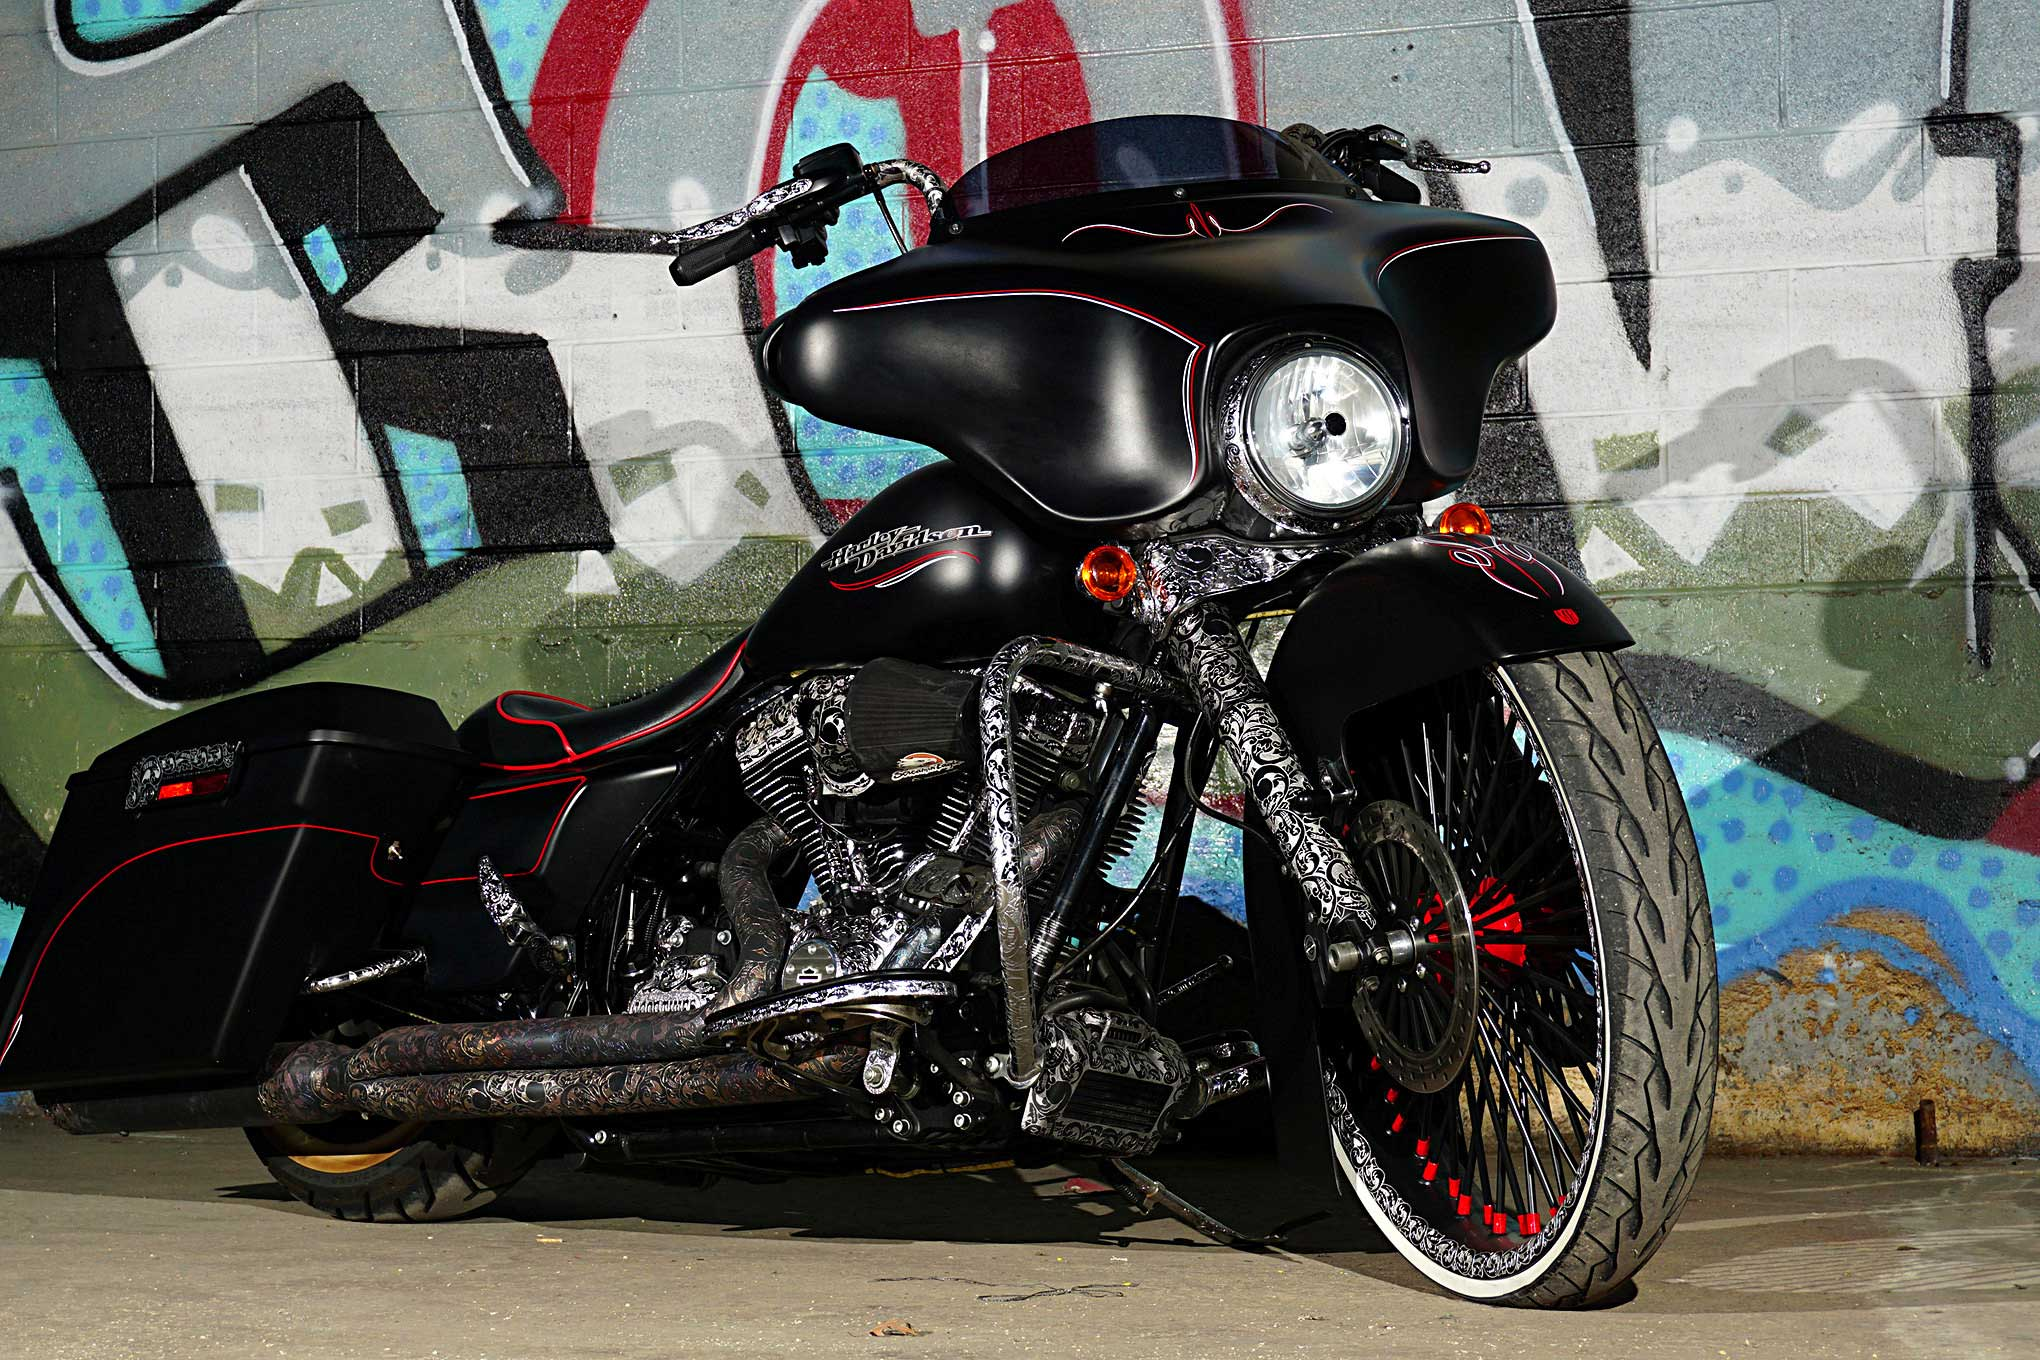 2012 Harley Davidson Street Glide It S A Family Thing